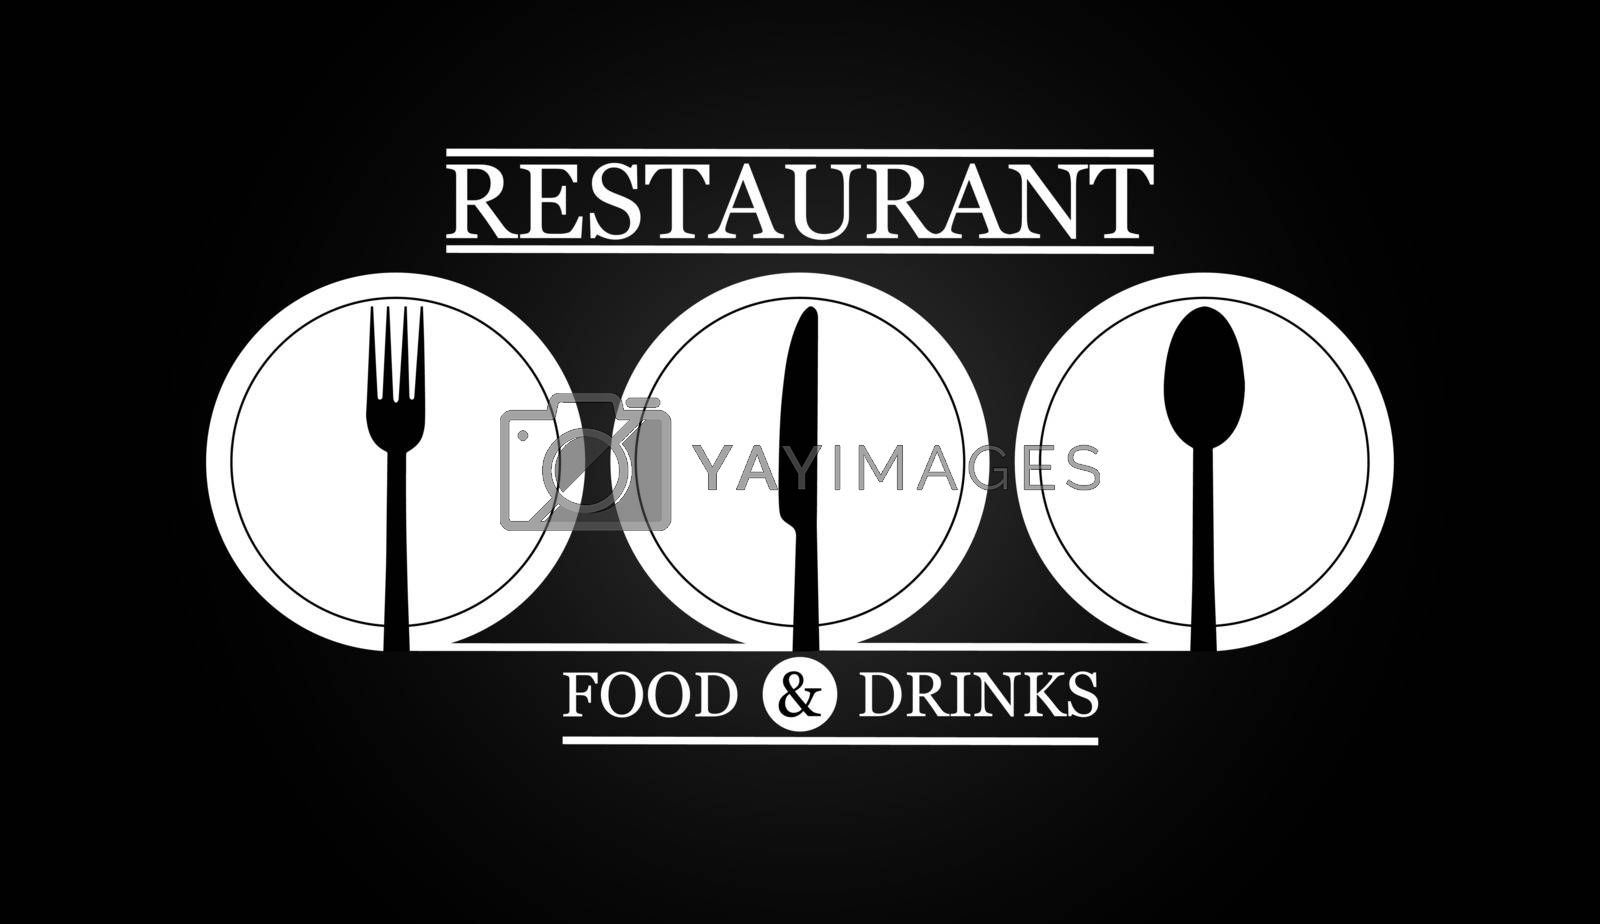 Logo for the menu of the restaurant gastro service or catering